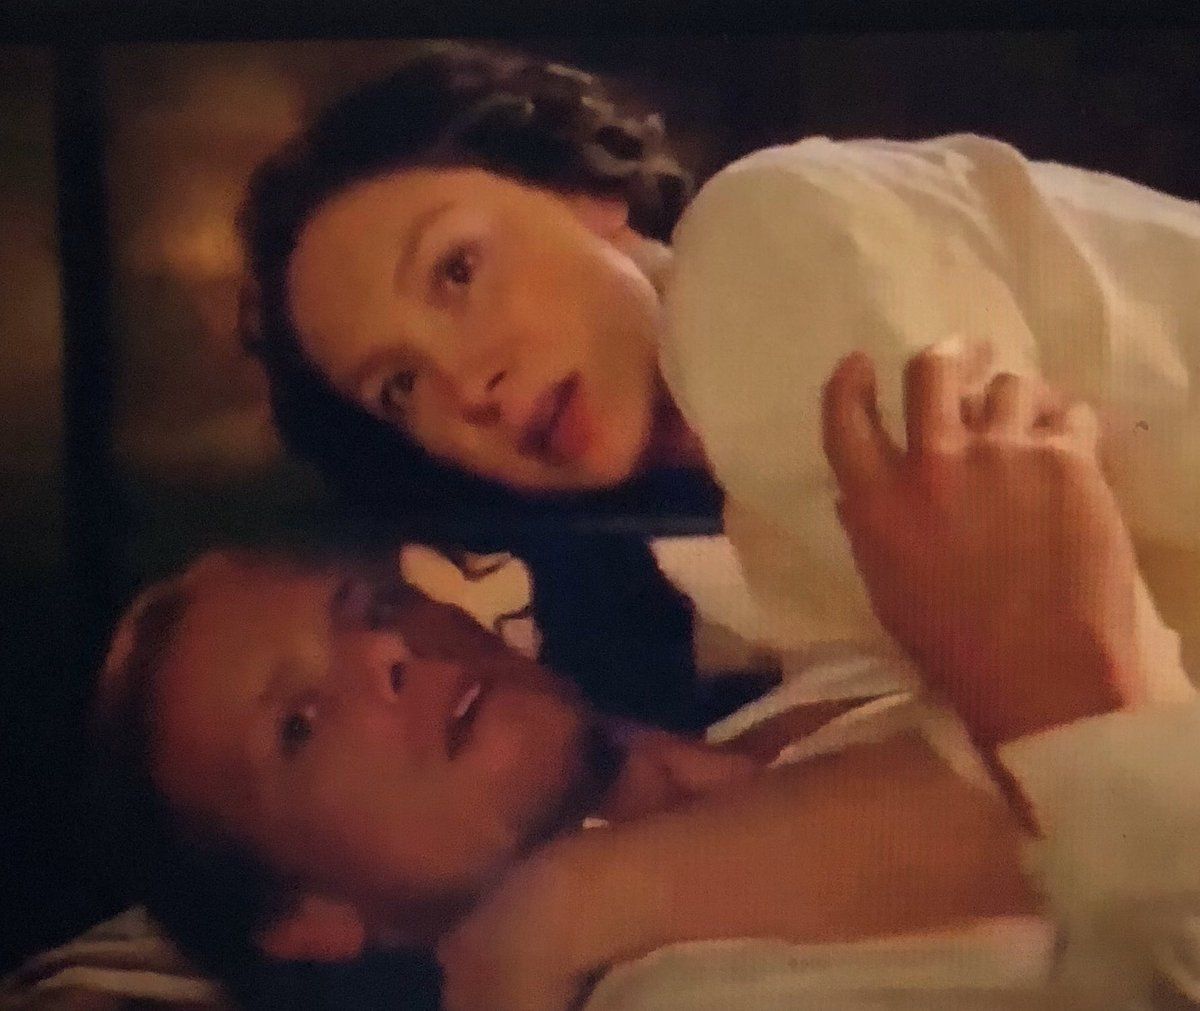 No comments about Grand Pa and Grand Ma gettin' interrupted?? #OutlanderSeason5Premiere  #TheFrasers   #Outlander <br>http://pic.twitter.com/mPuZgITQTo